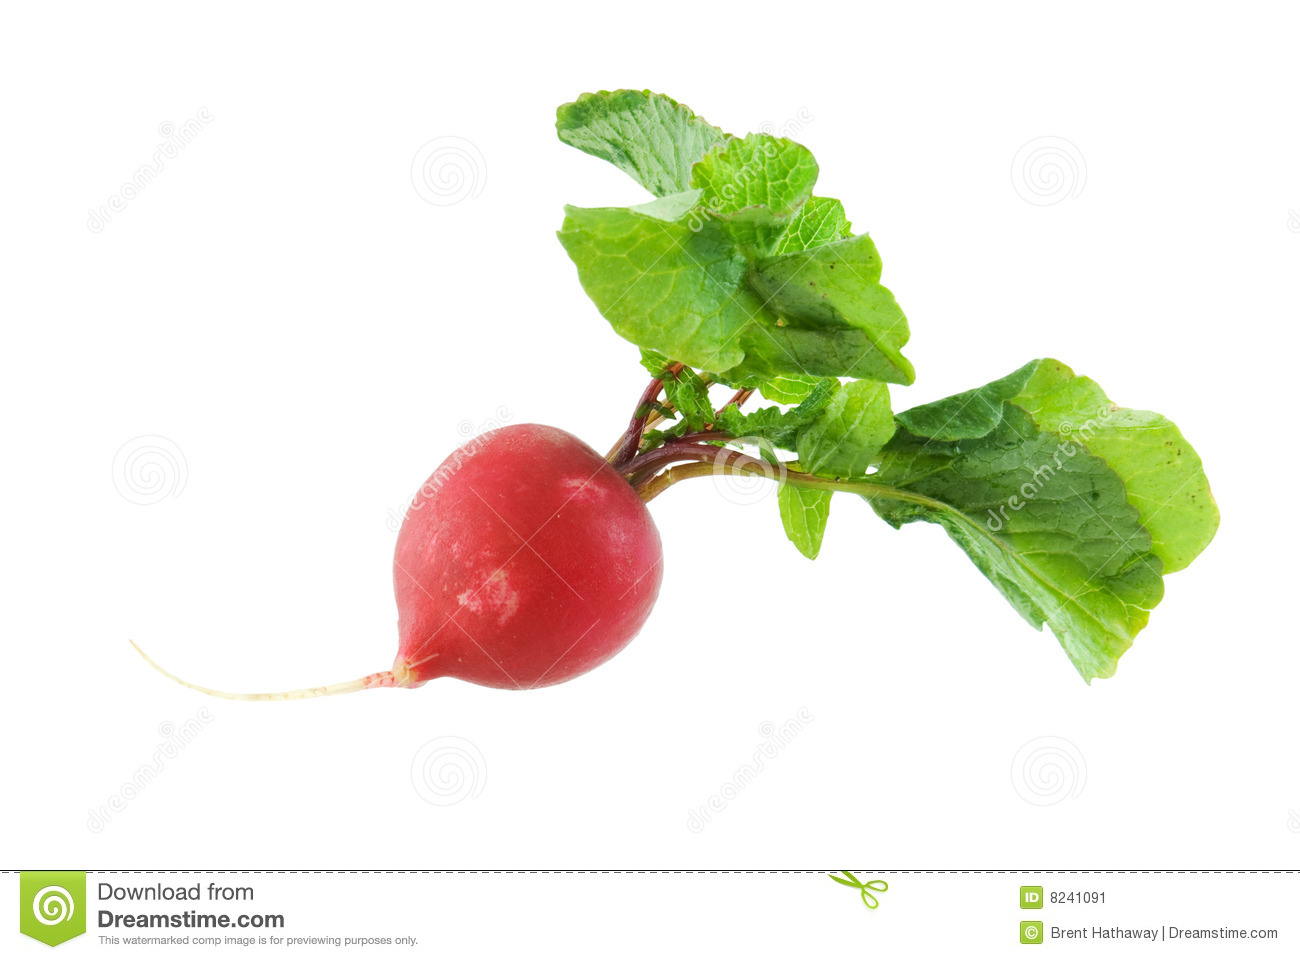 Radish isolated on a white background.